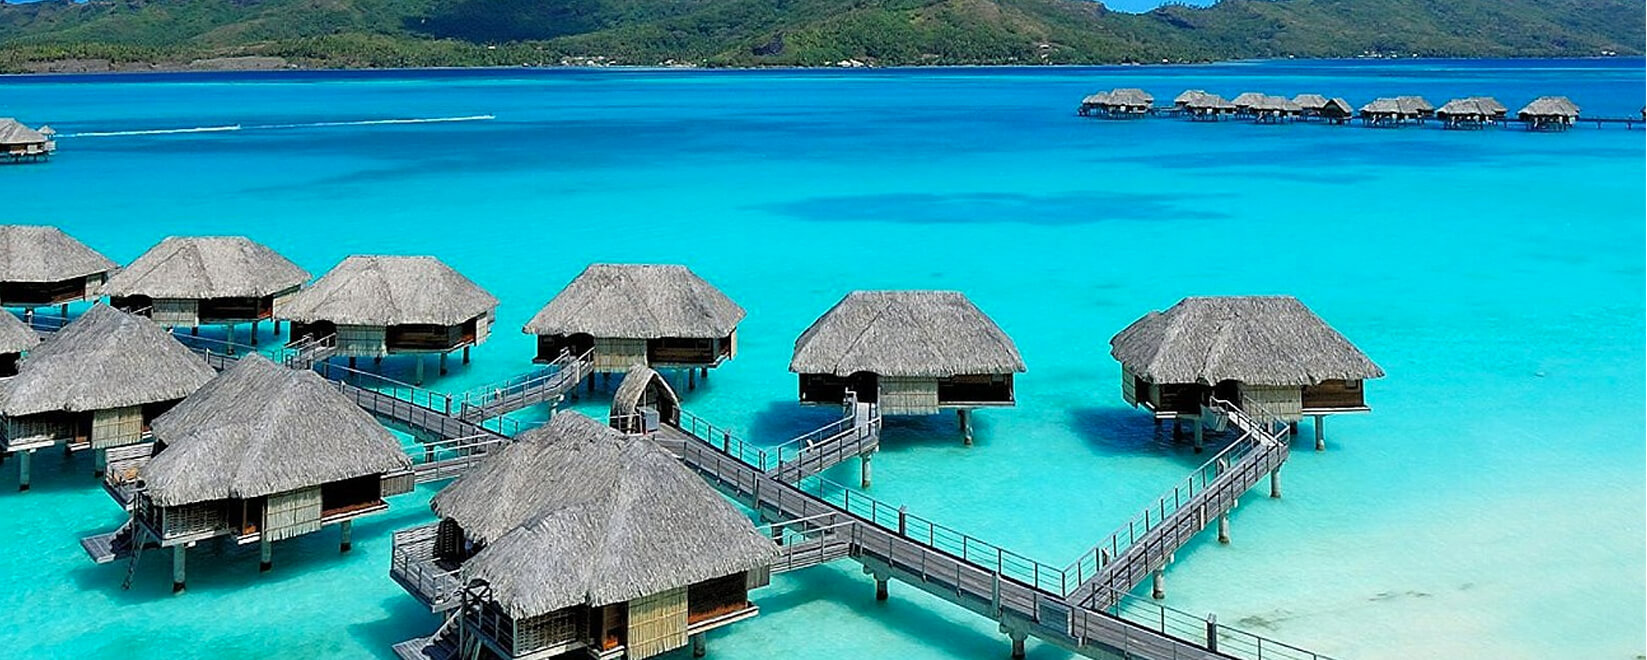 FROM THE WEST COAST: BORA BORA, FRENCH POLYNESIA